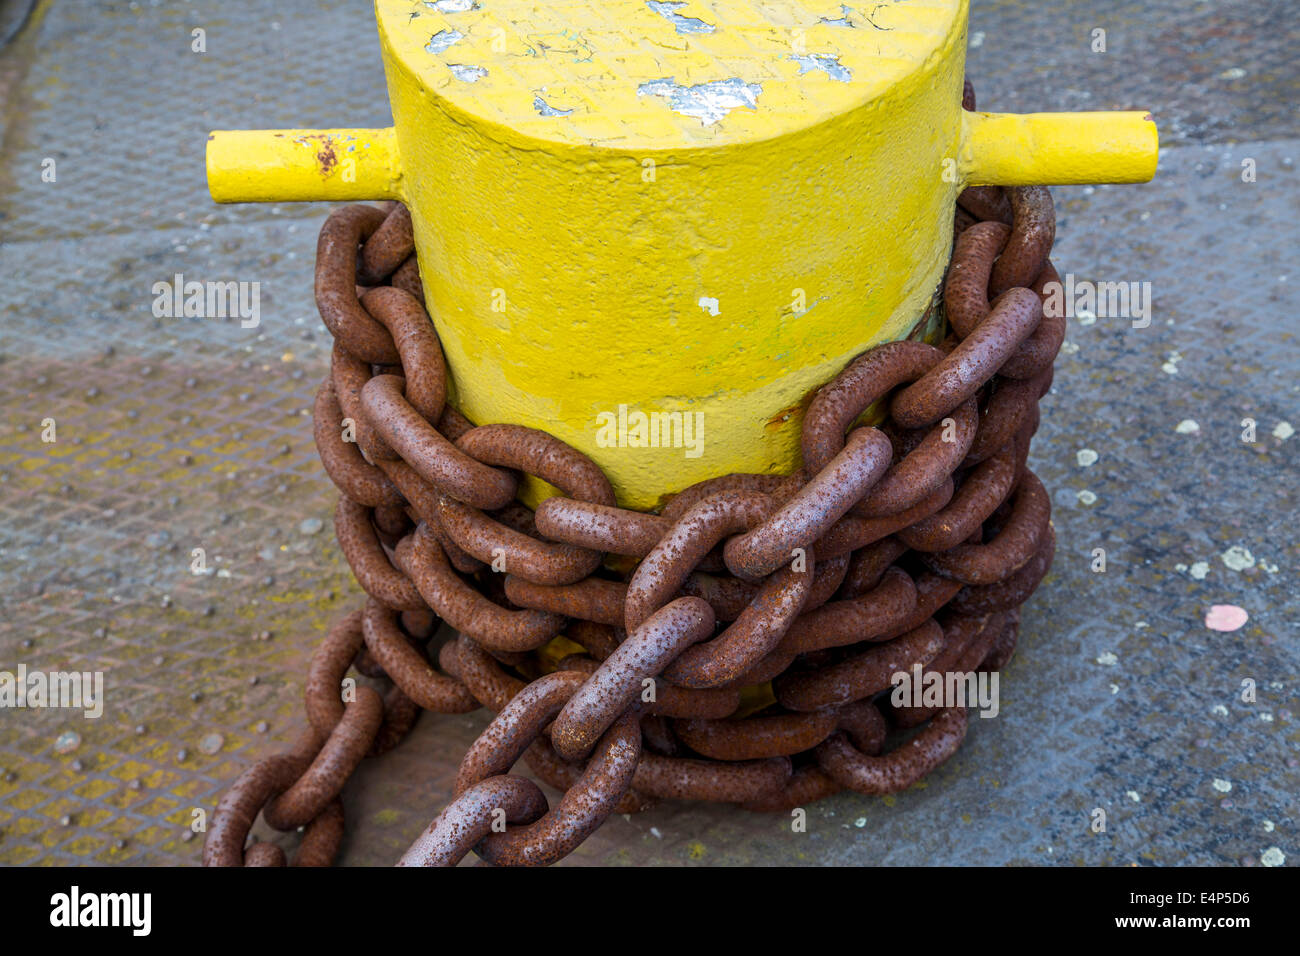 Rusted chains, chain links of a chain attachment, - Stock Image